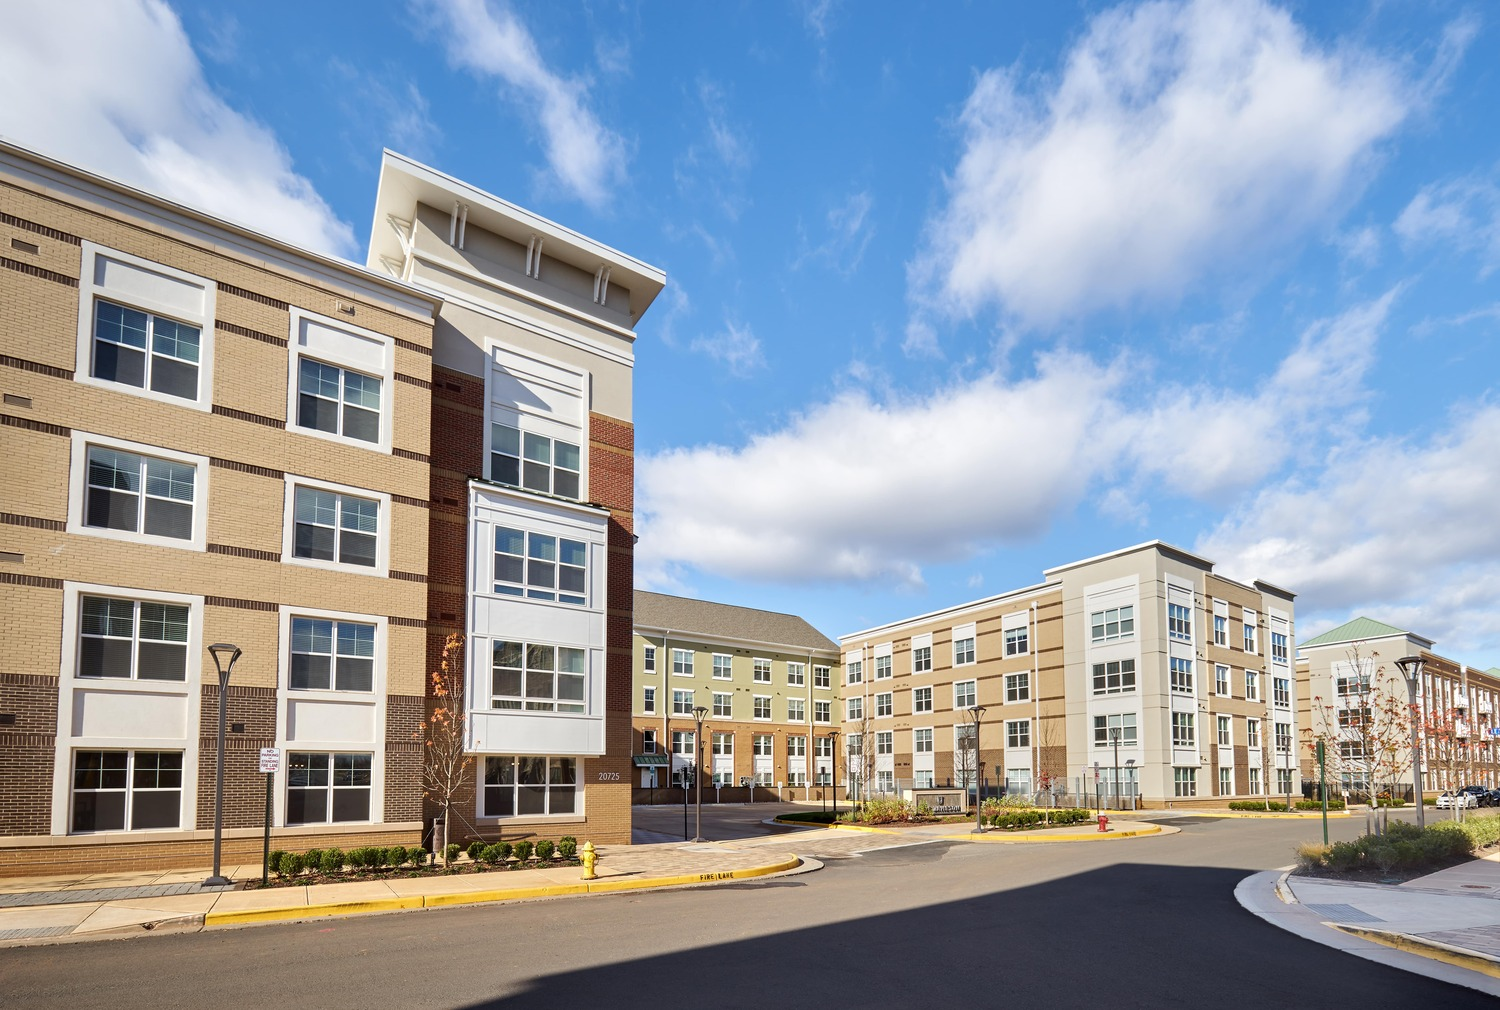 CBG builds The Jameson at Kincora, a 333-Unit Market-Rate Community in Master Development in Sterling, VA - Image #2